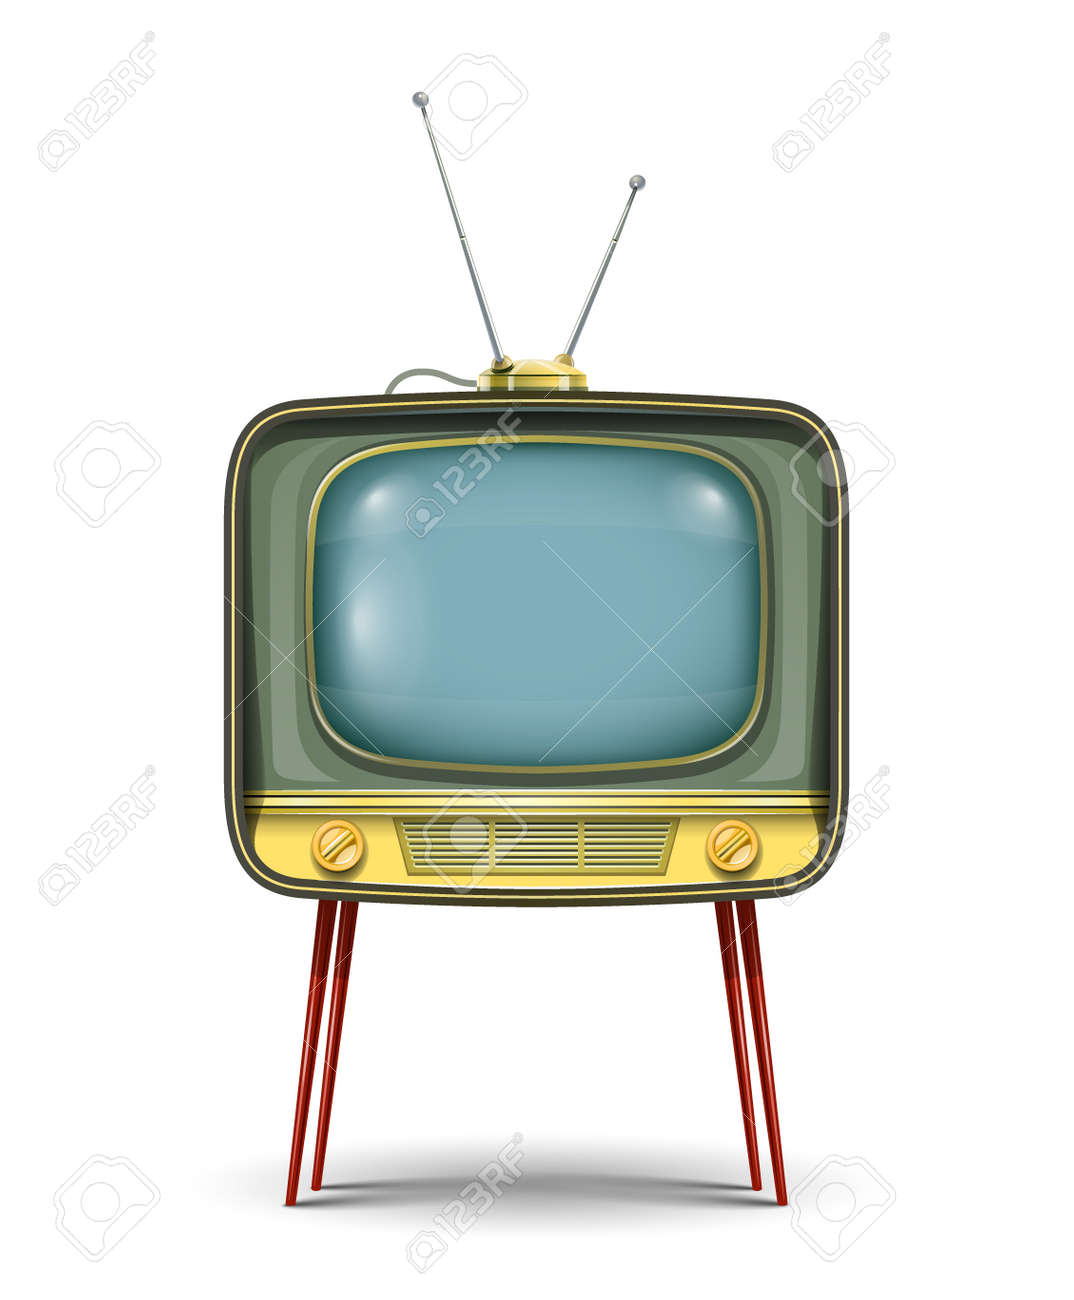 retro tv set illustration isolated on white background. Transparent objects and opacity masks used for shadows and lights drawing Stock Vector - 20042894